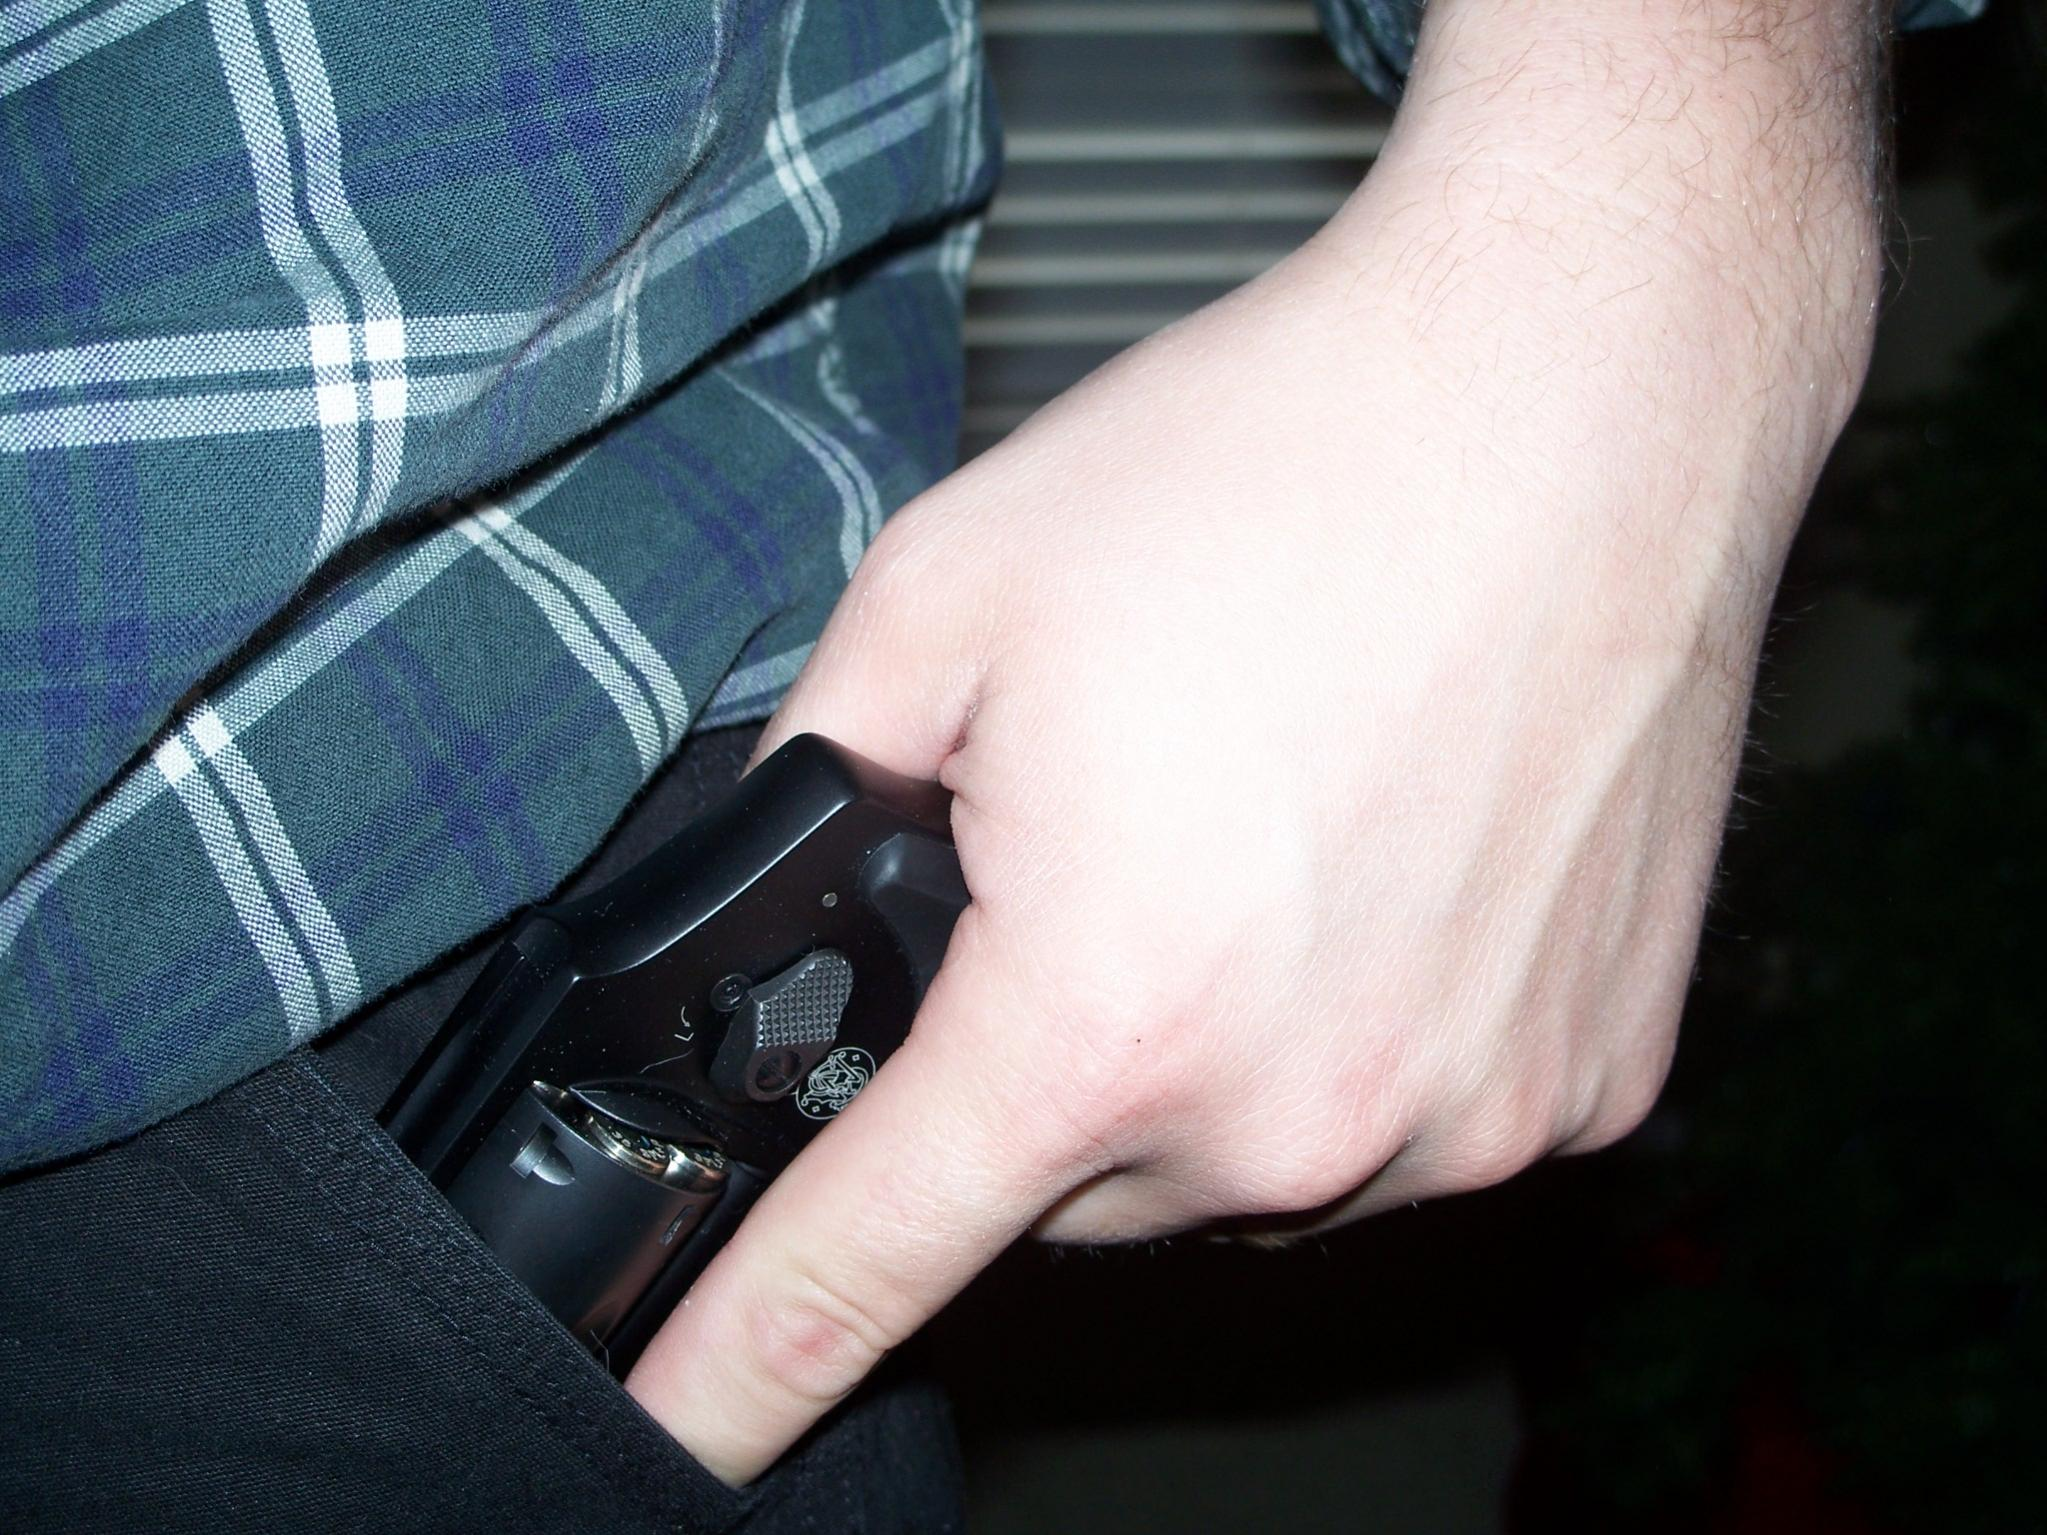 Let's See Your Pic's - How You Carry Concealed.-101_6111.jpg